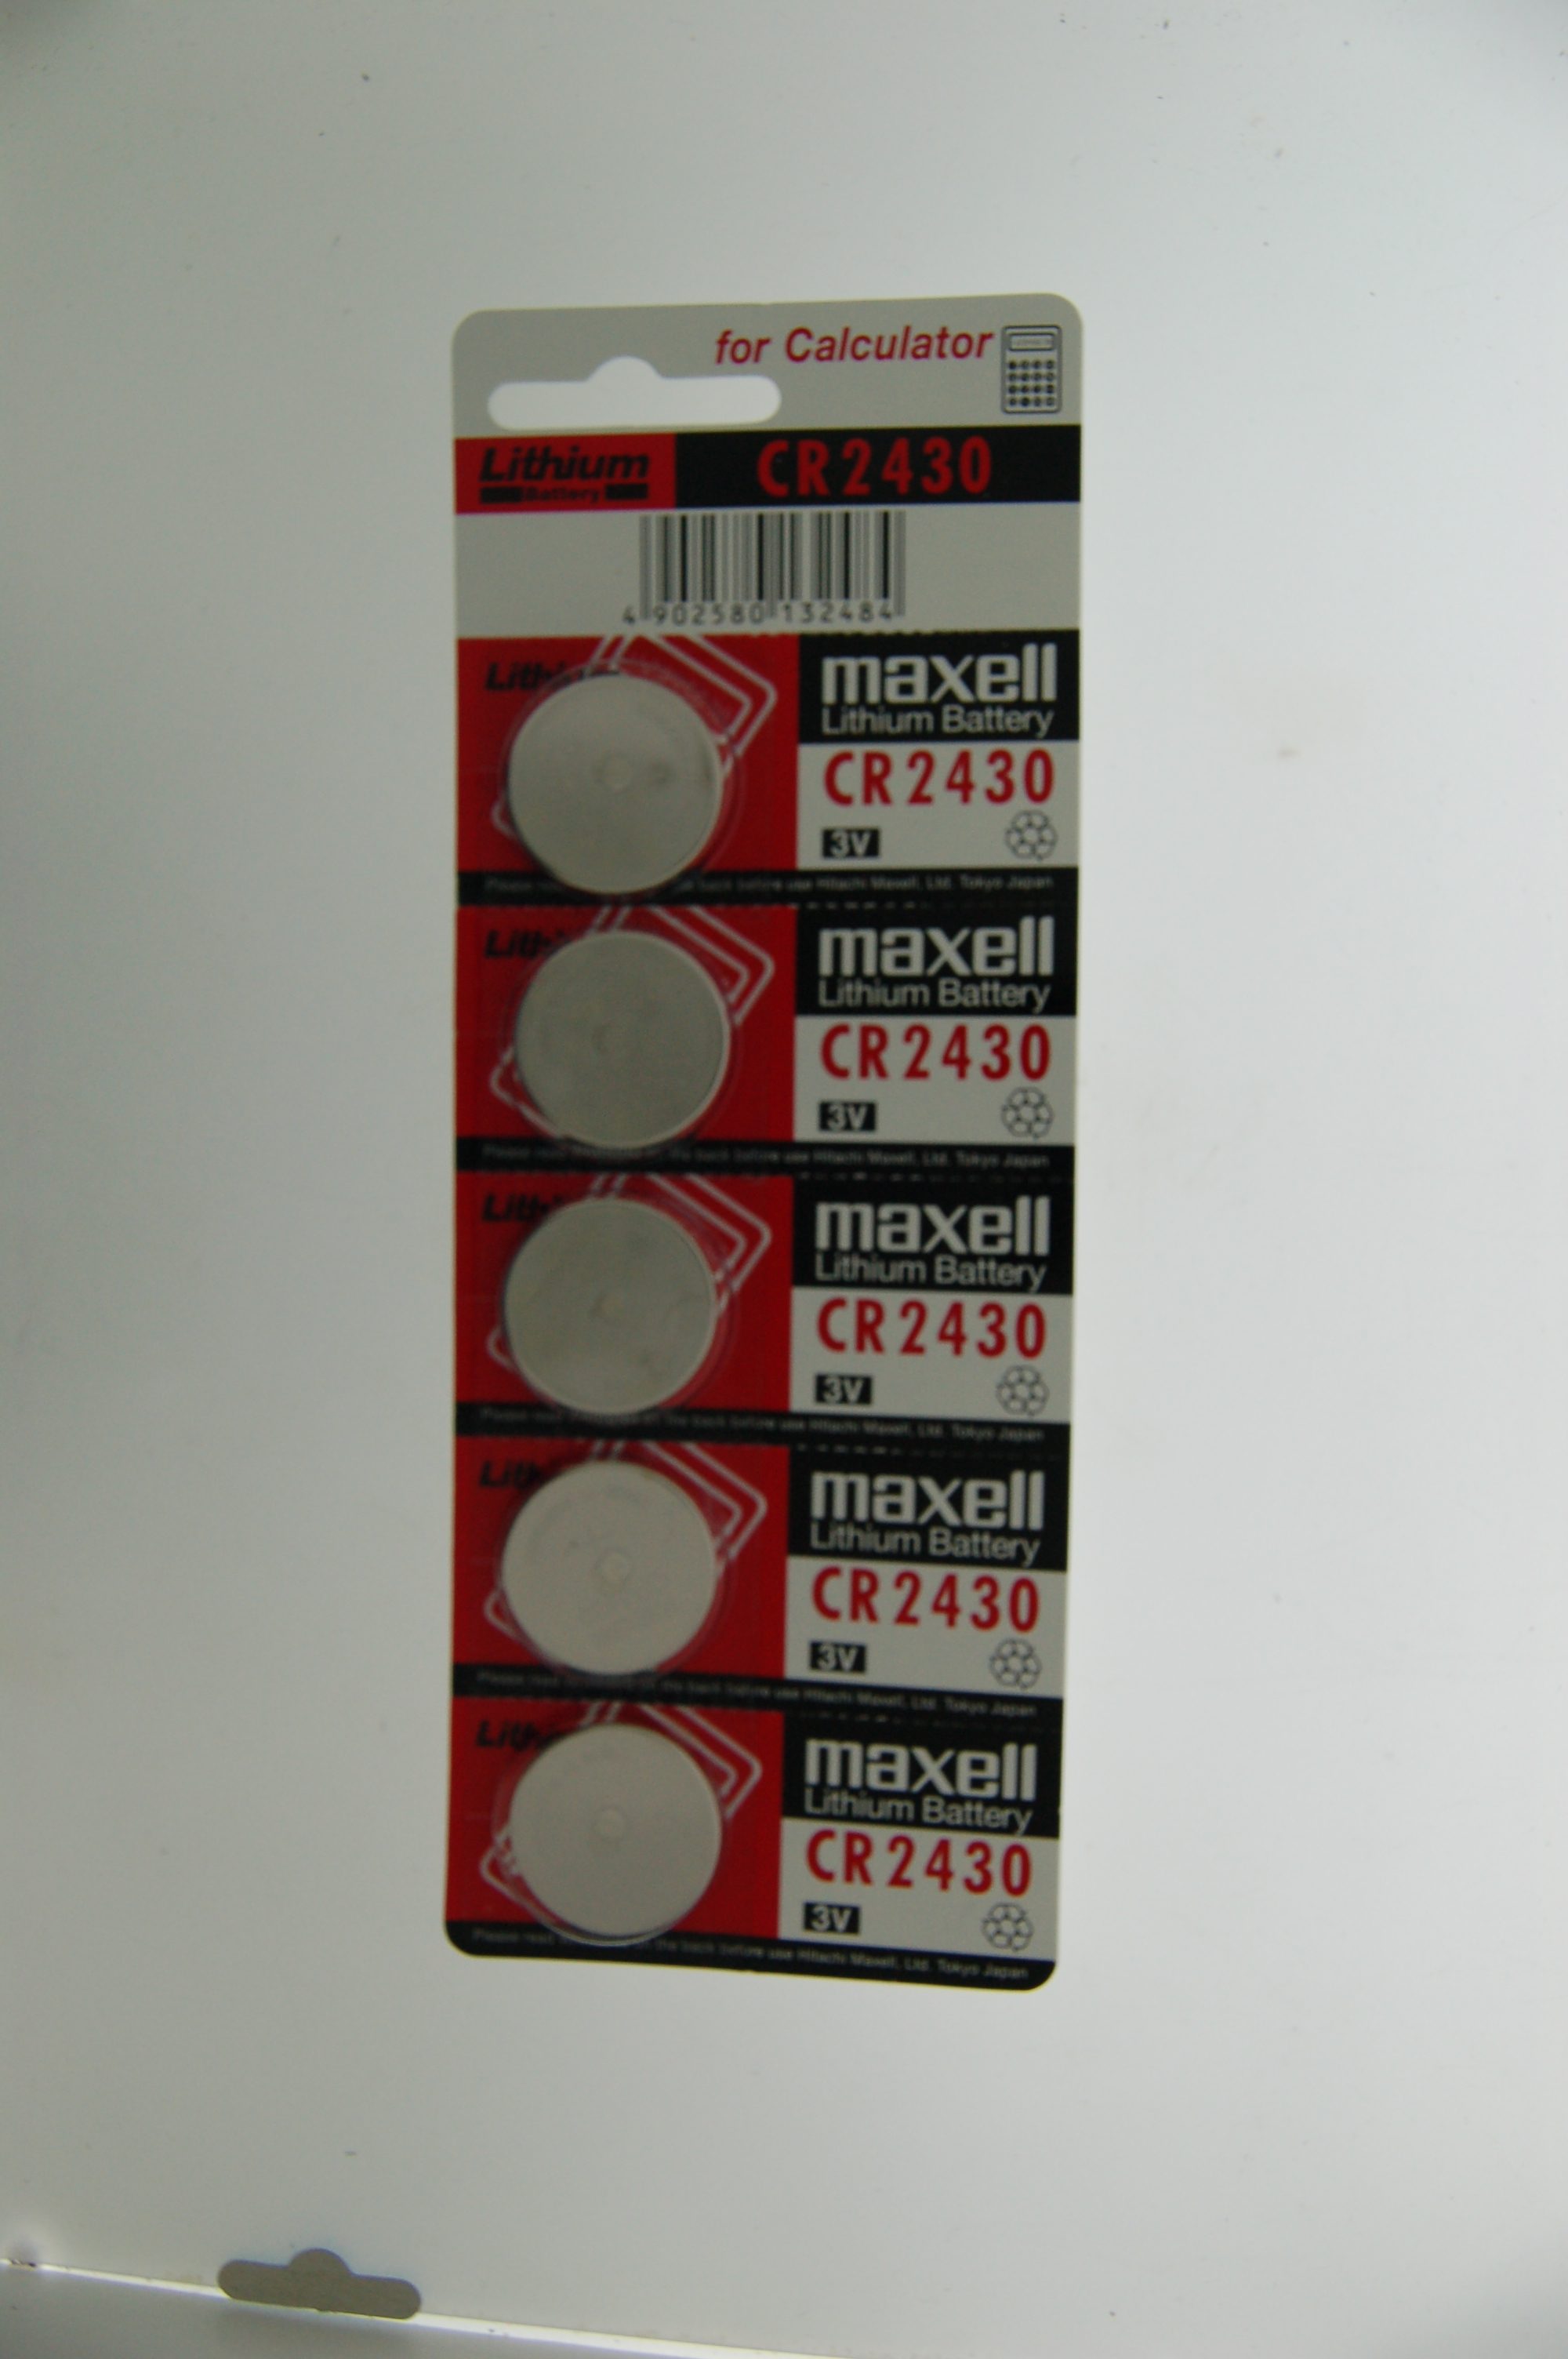 Maxell Lithium Battery CR2430